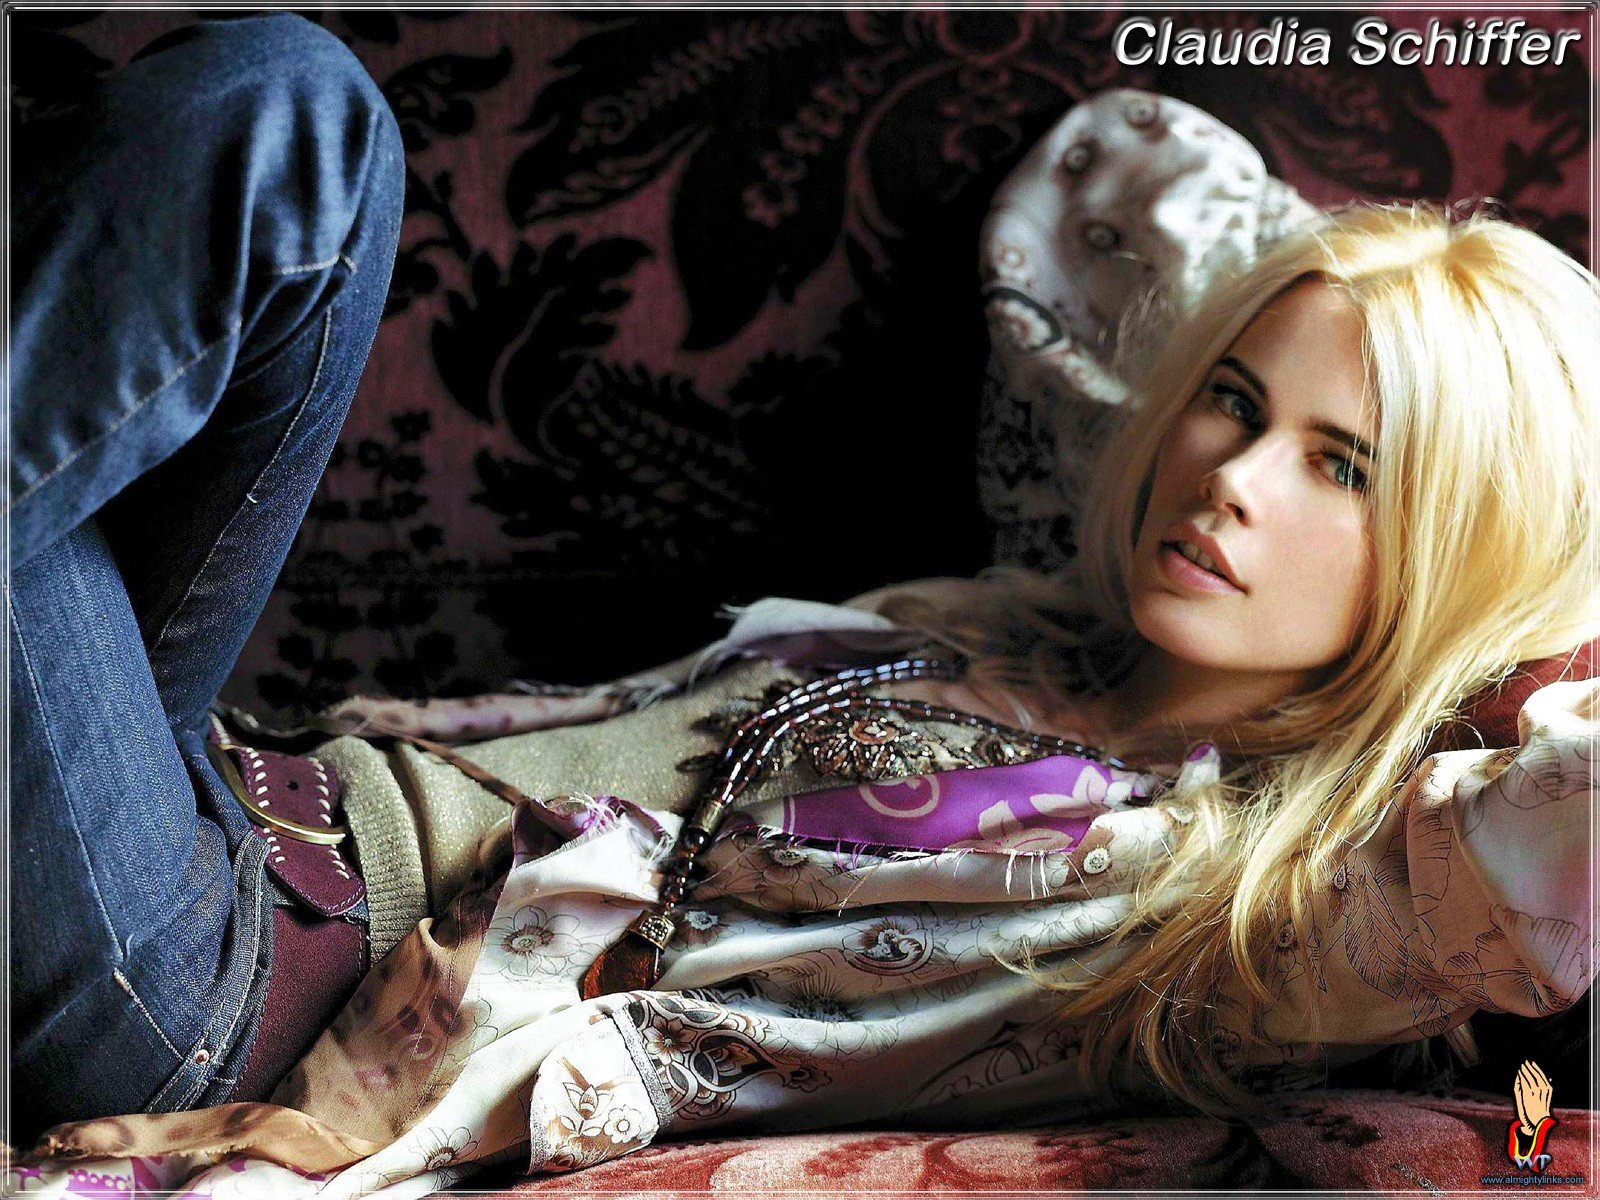 Free Claudia Schiffer high quality wallpaper ID:7774 for hd 1600x1200 desktop